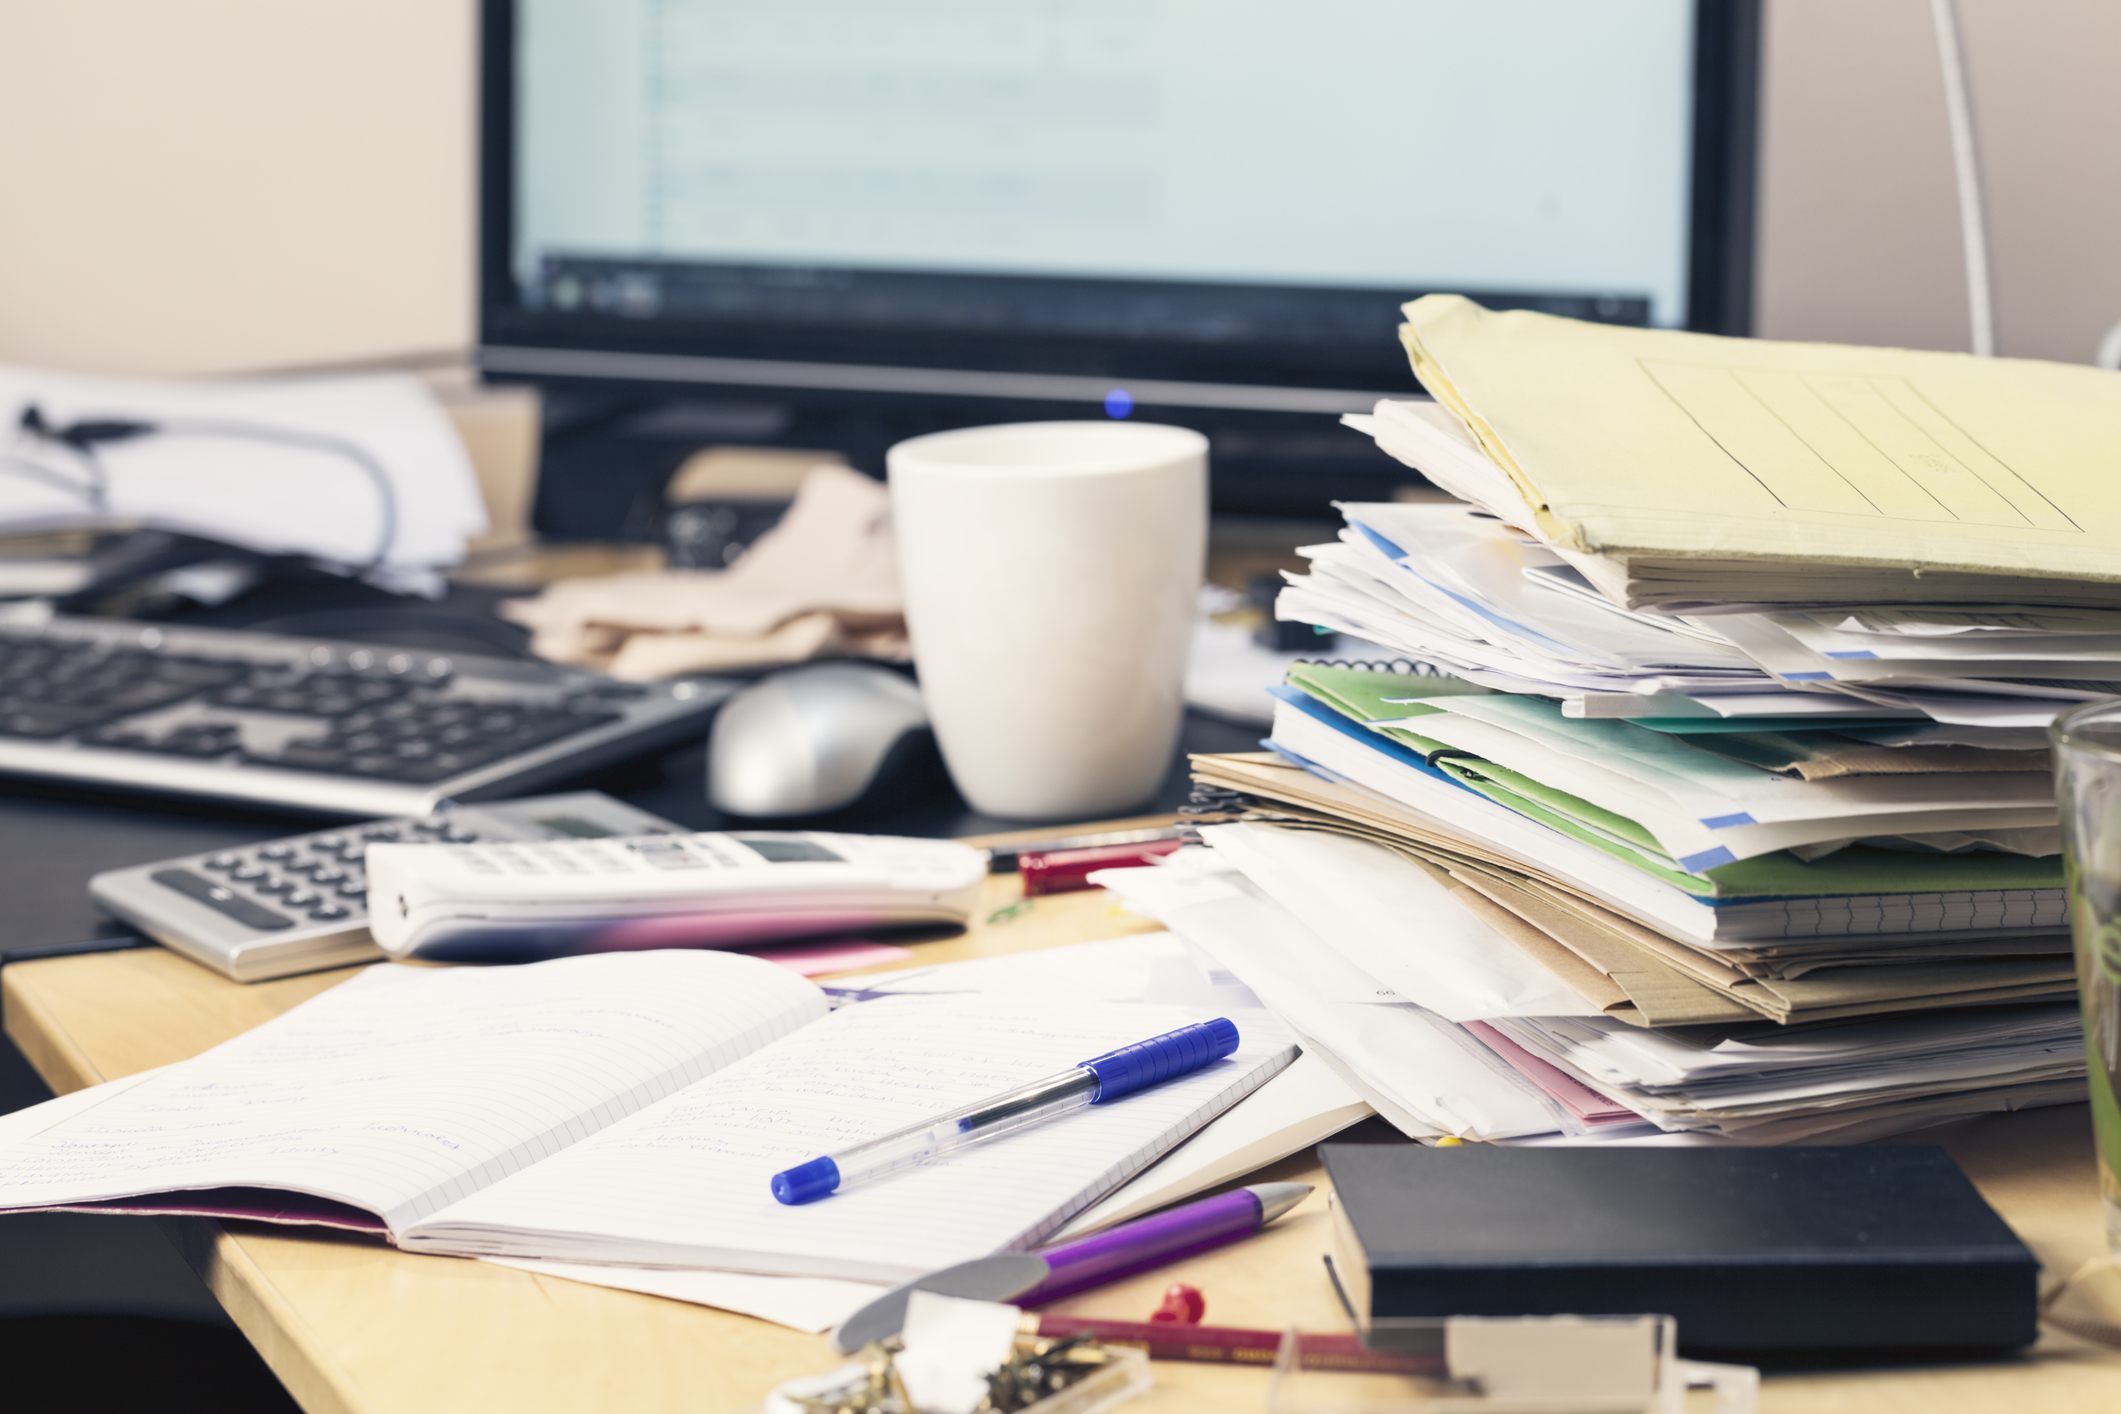 work-habits-that-put-your-information-at-risk-complete-shredding-solutions